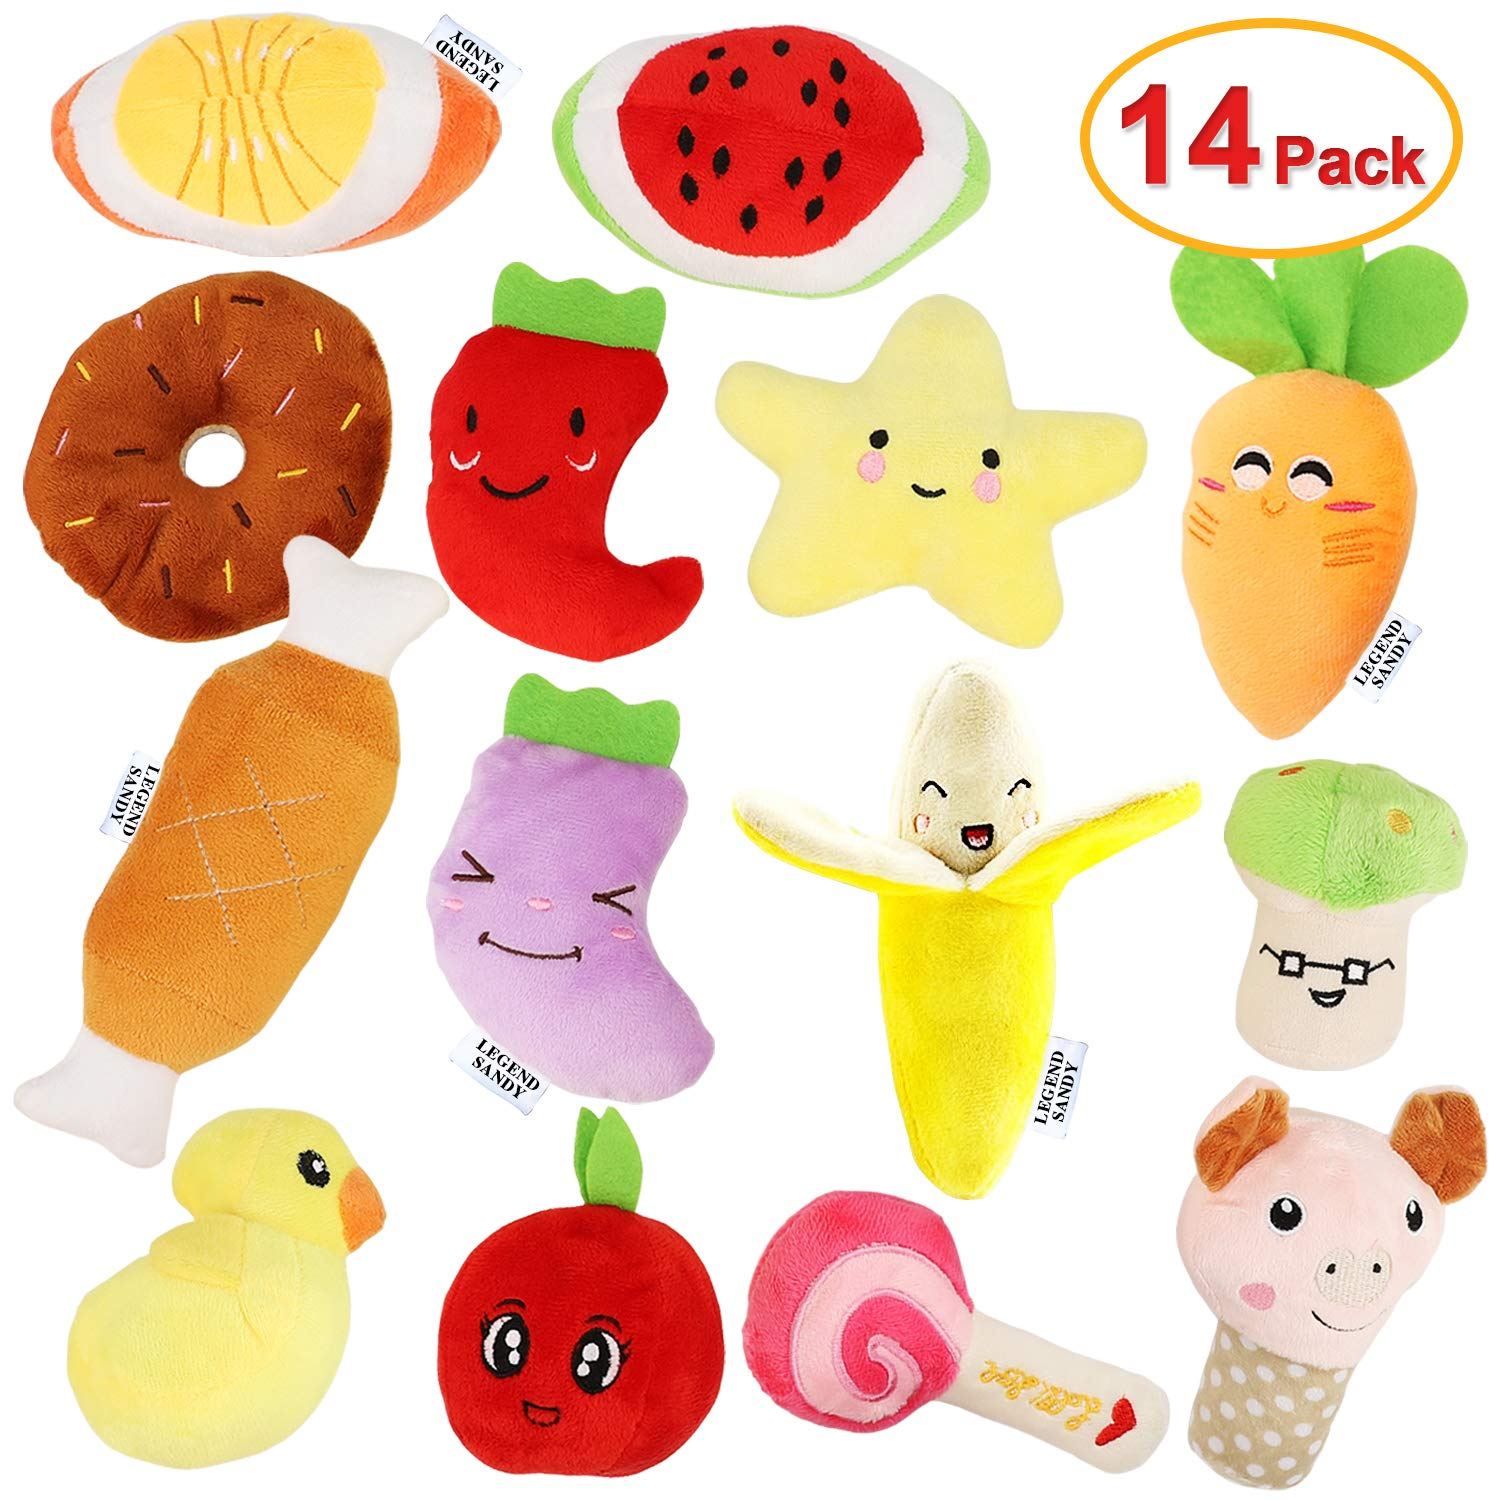 14 Pack Dog Squeaky Toys Cute Stuffed Plush Fruits Snacks and Vegetables Dog Toys for Puppy Small Medium Dog Pets by LEGEND SANDY